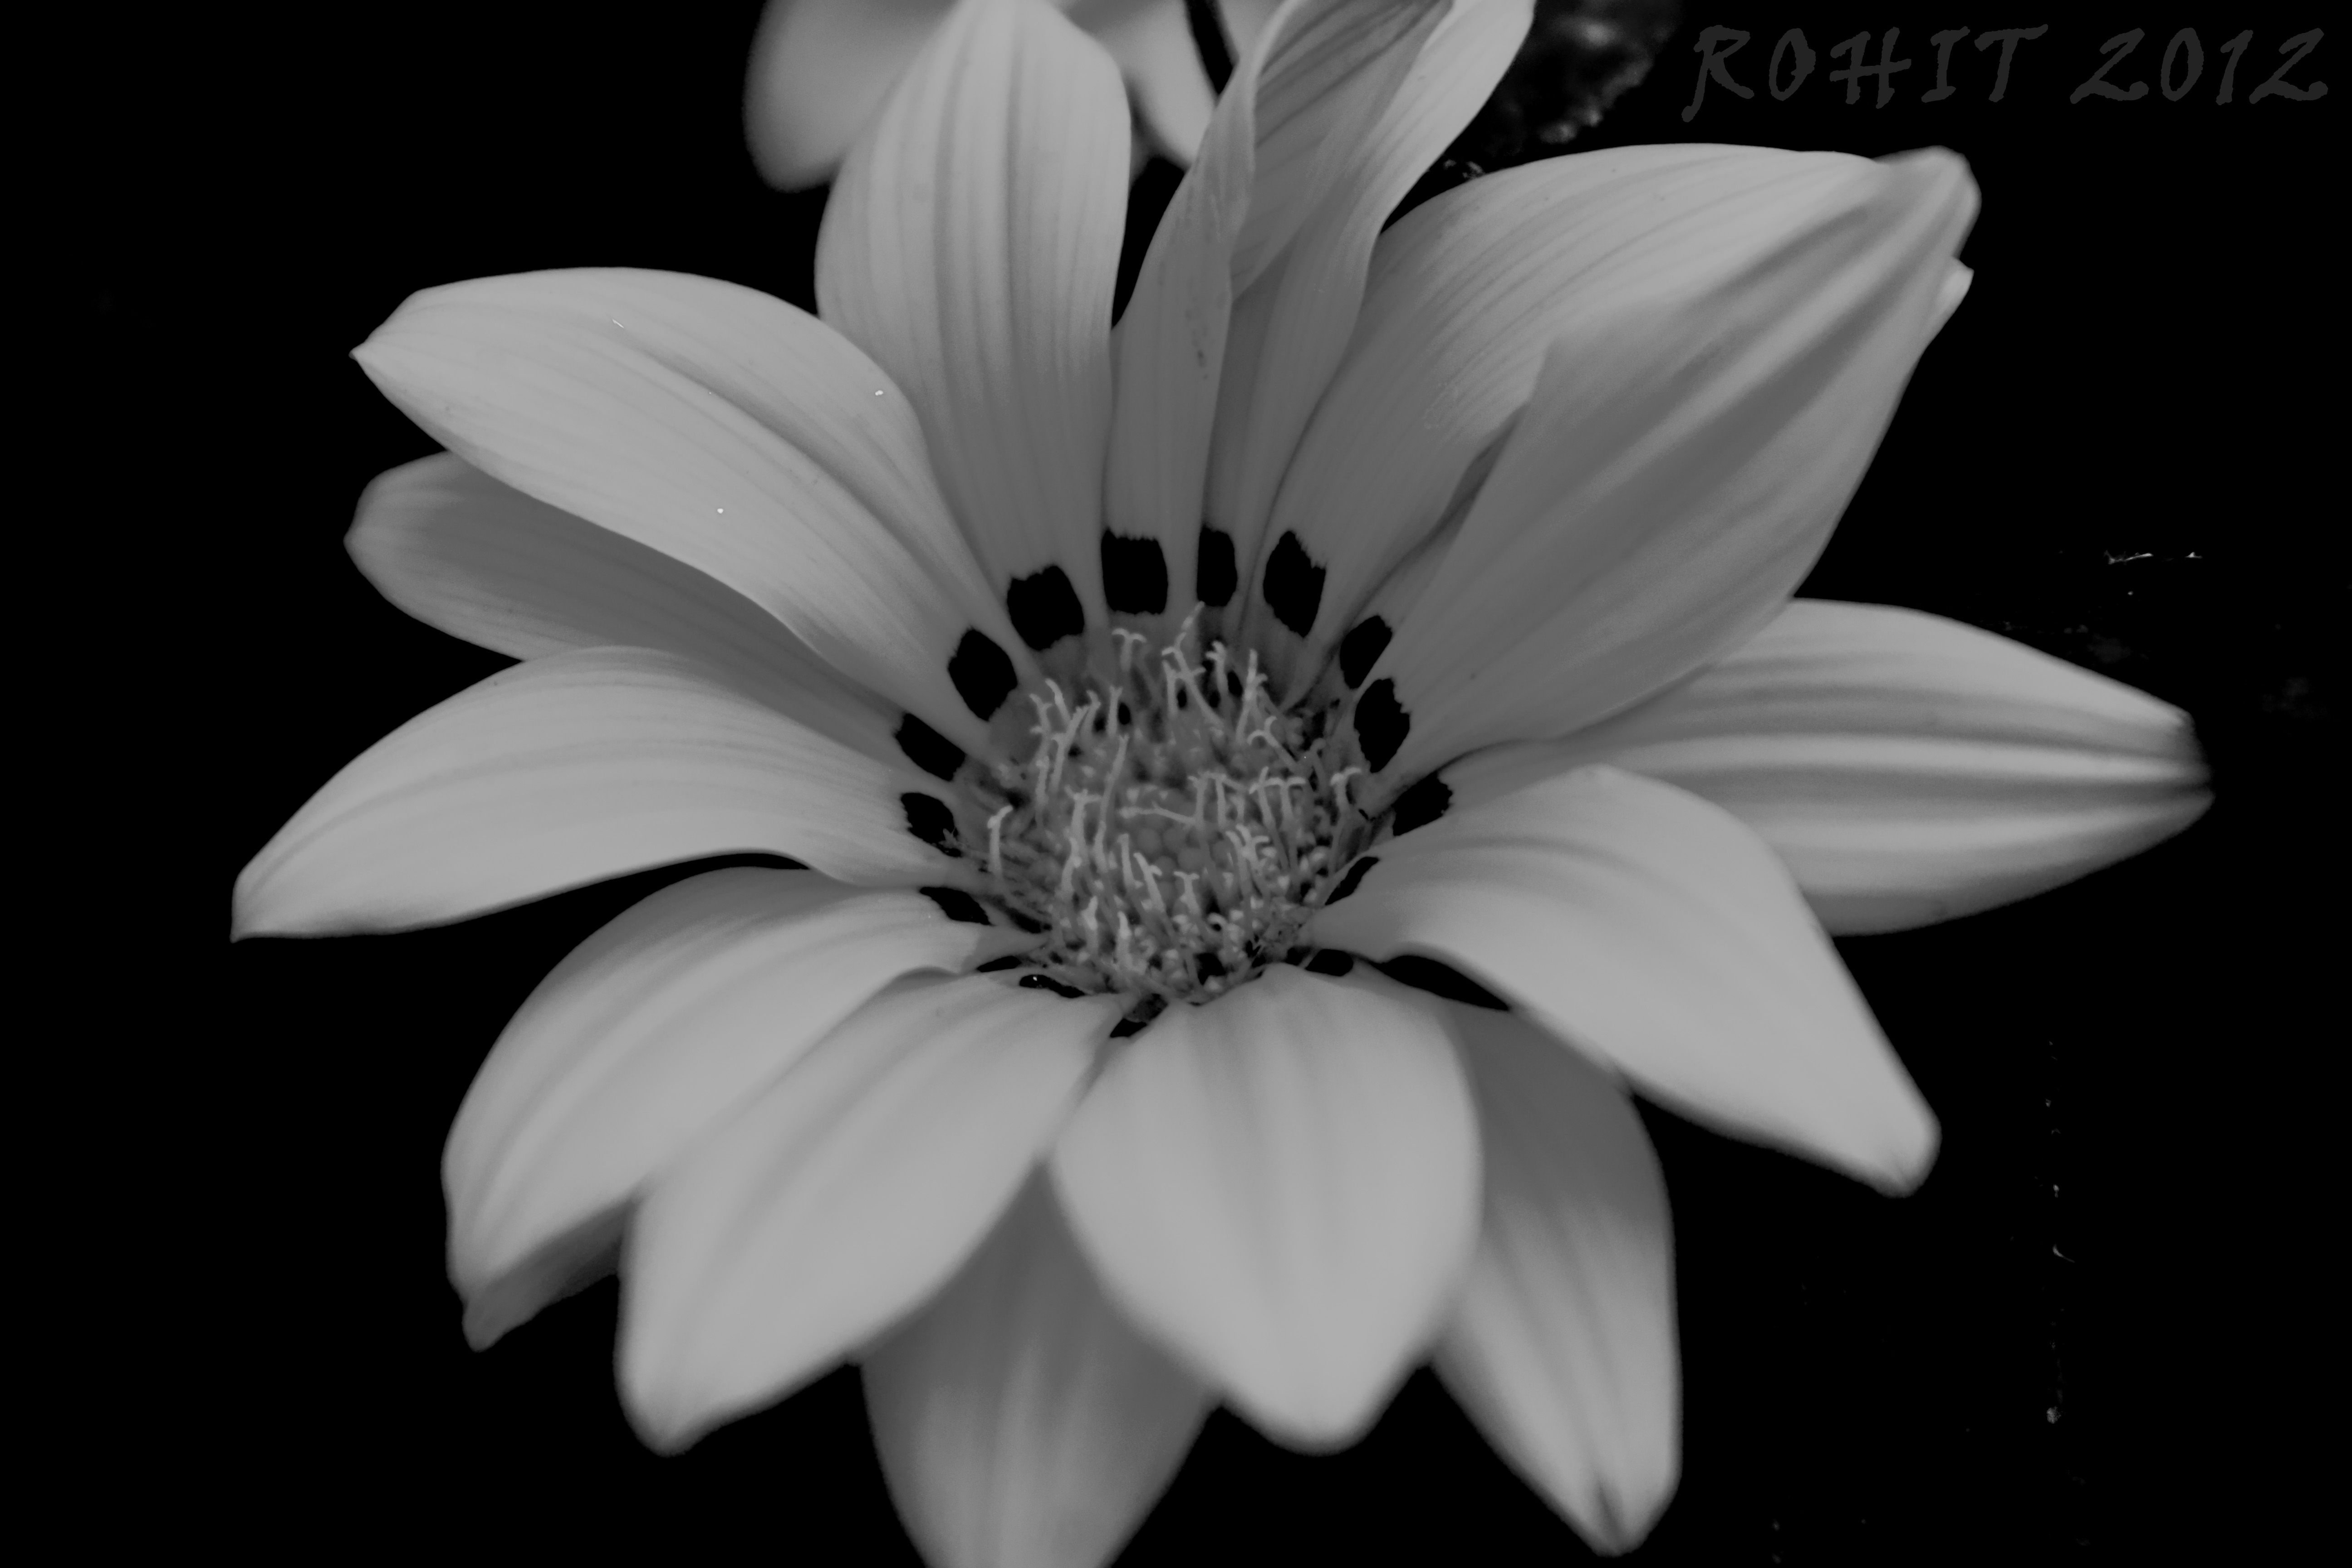 Pin by Andrea Pedemonte on Flowers | Pinterest